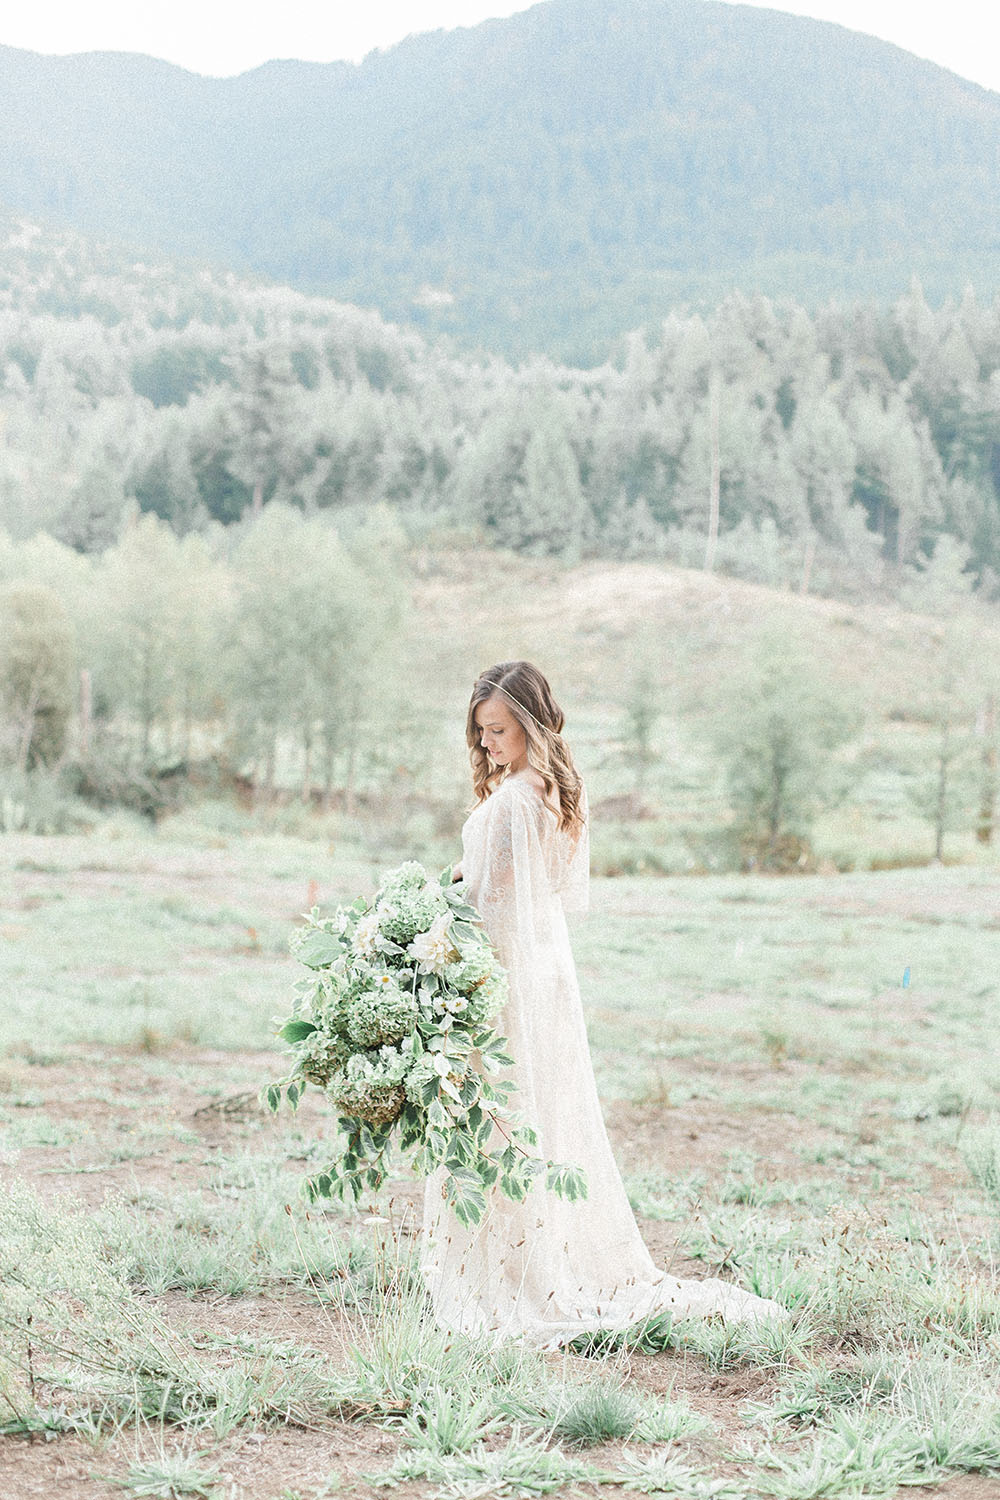 Dreamy Fairytale Engagement on Apple Brides